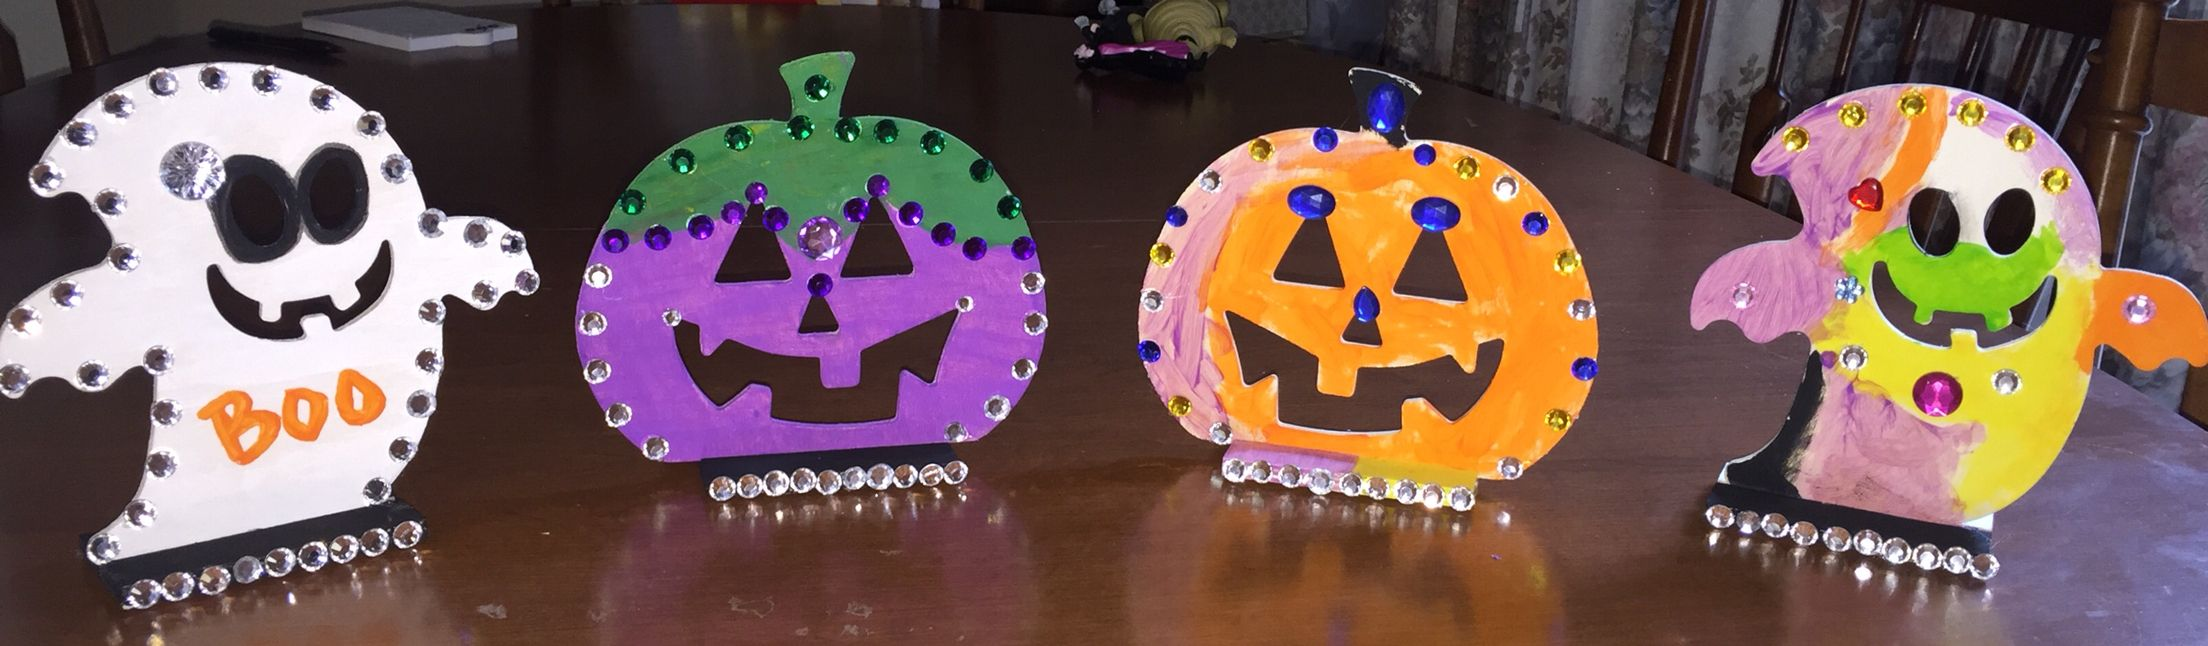 Paint and bedazel! Halloween Pinterest - Kid Friendly Halloween Decorations